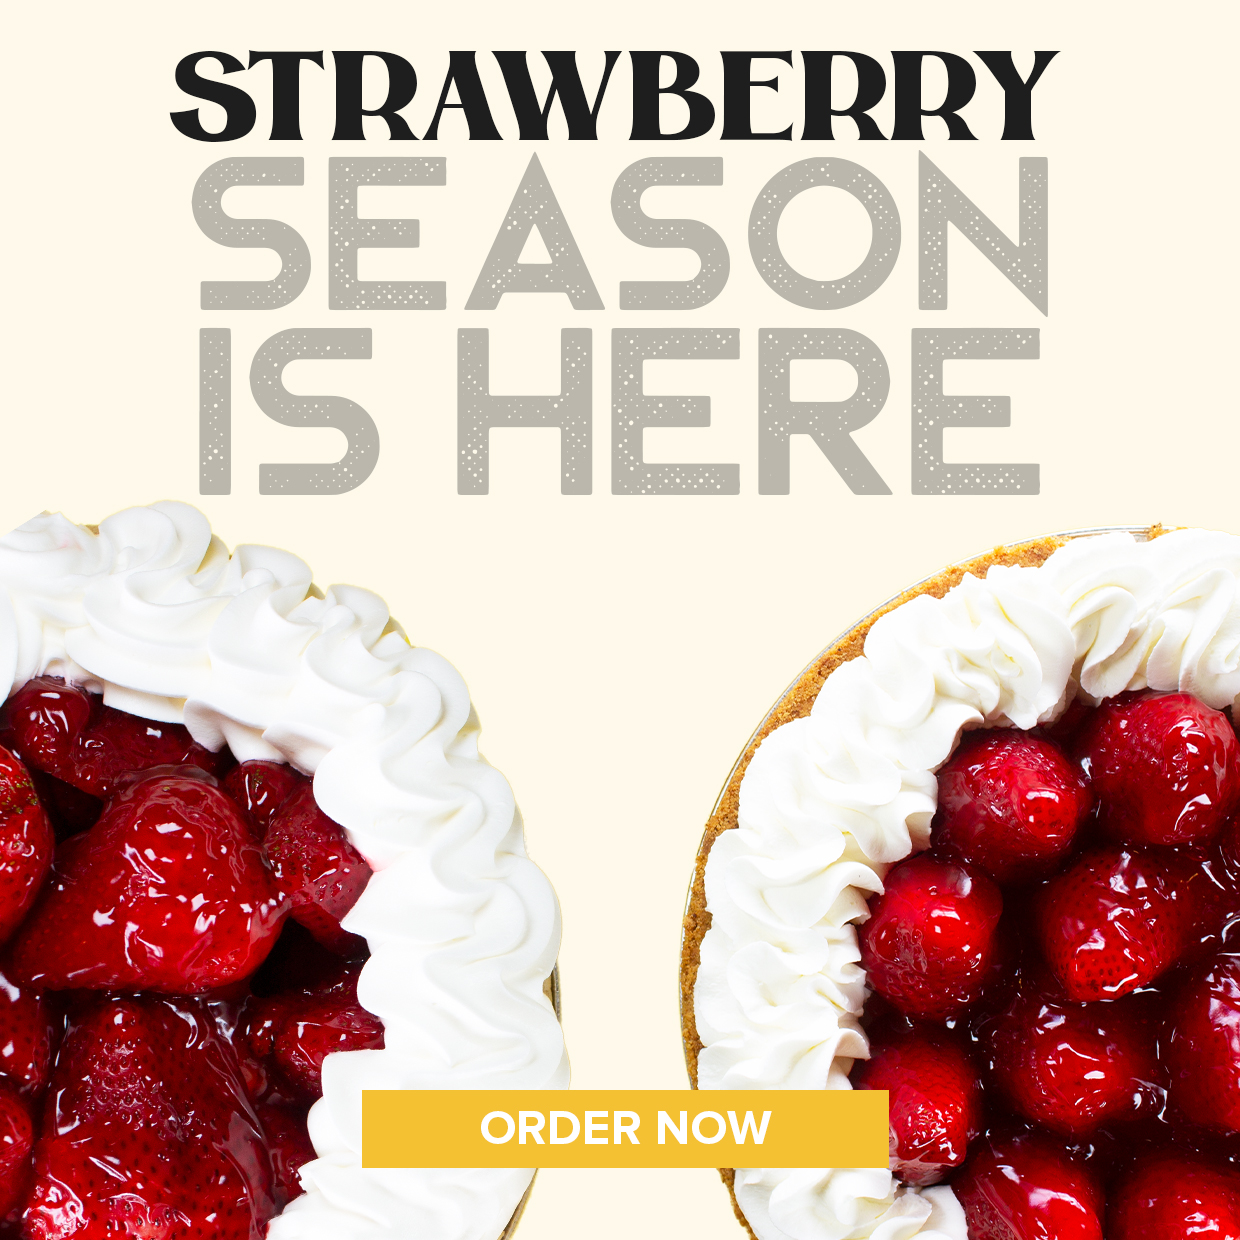 Strawberry season is here. Order Now.